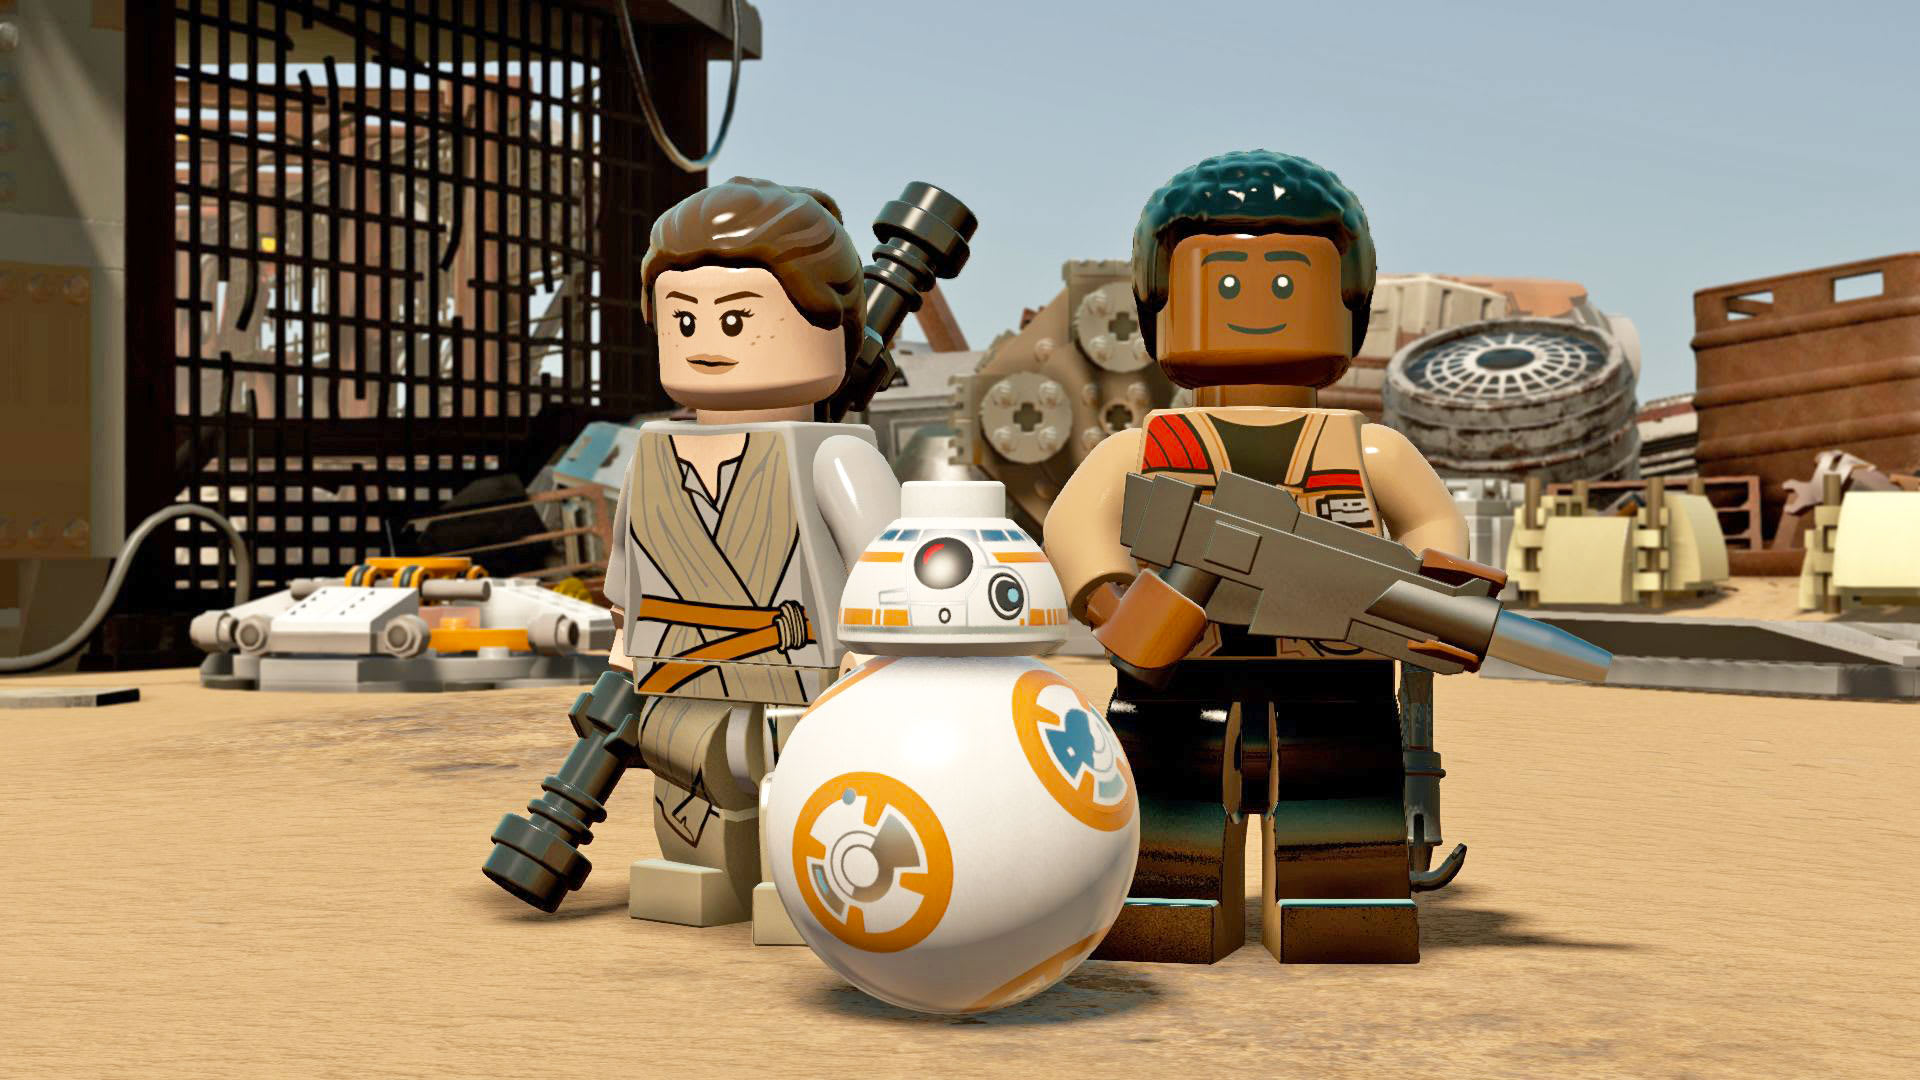 LEGO Star Wars: The Force Awakens' season pass detailed